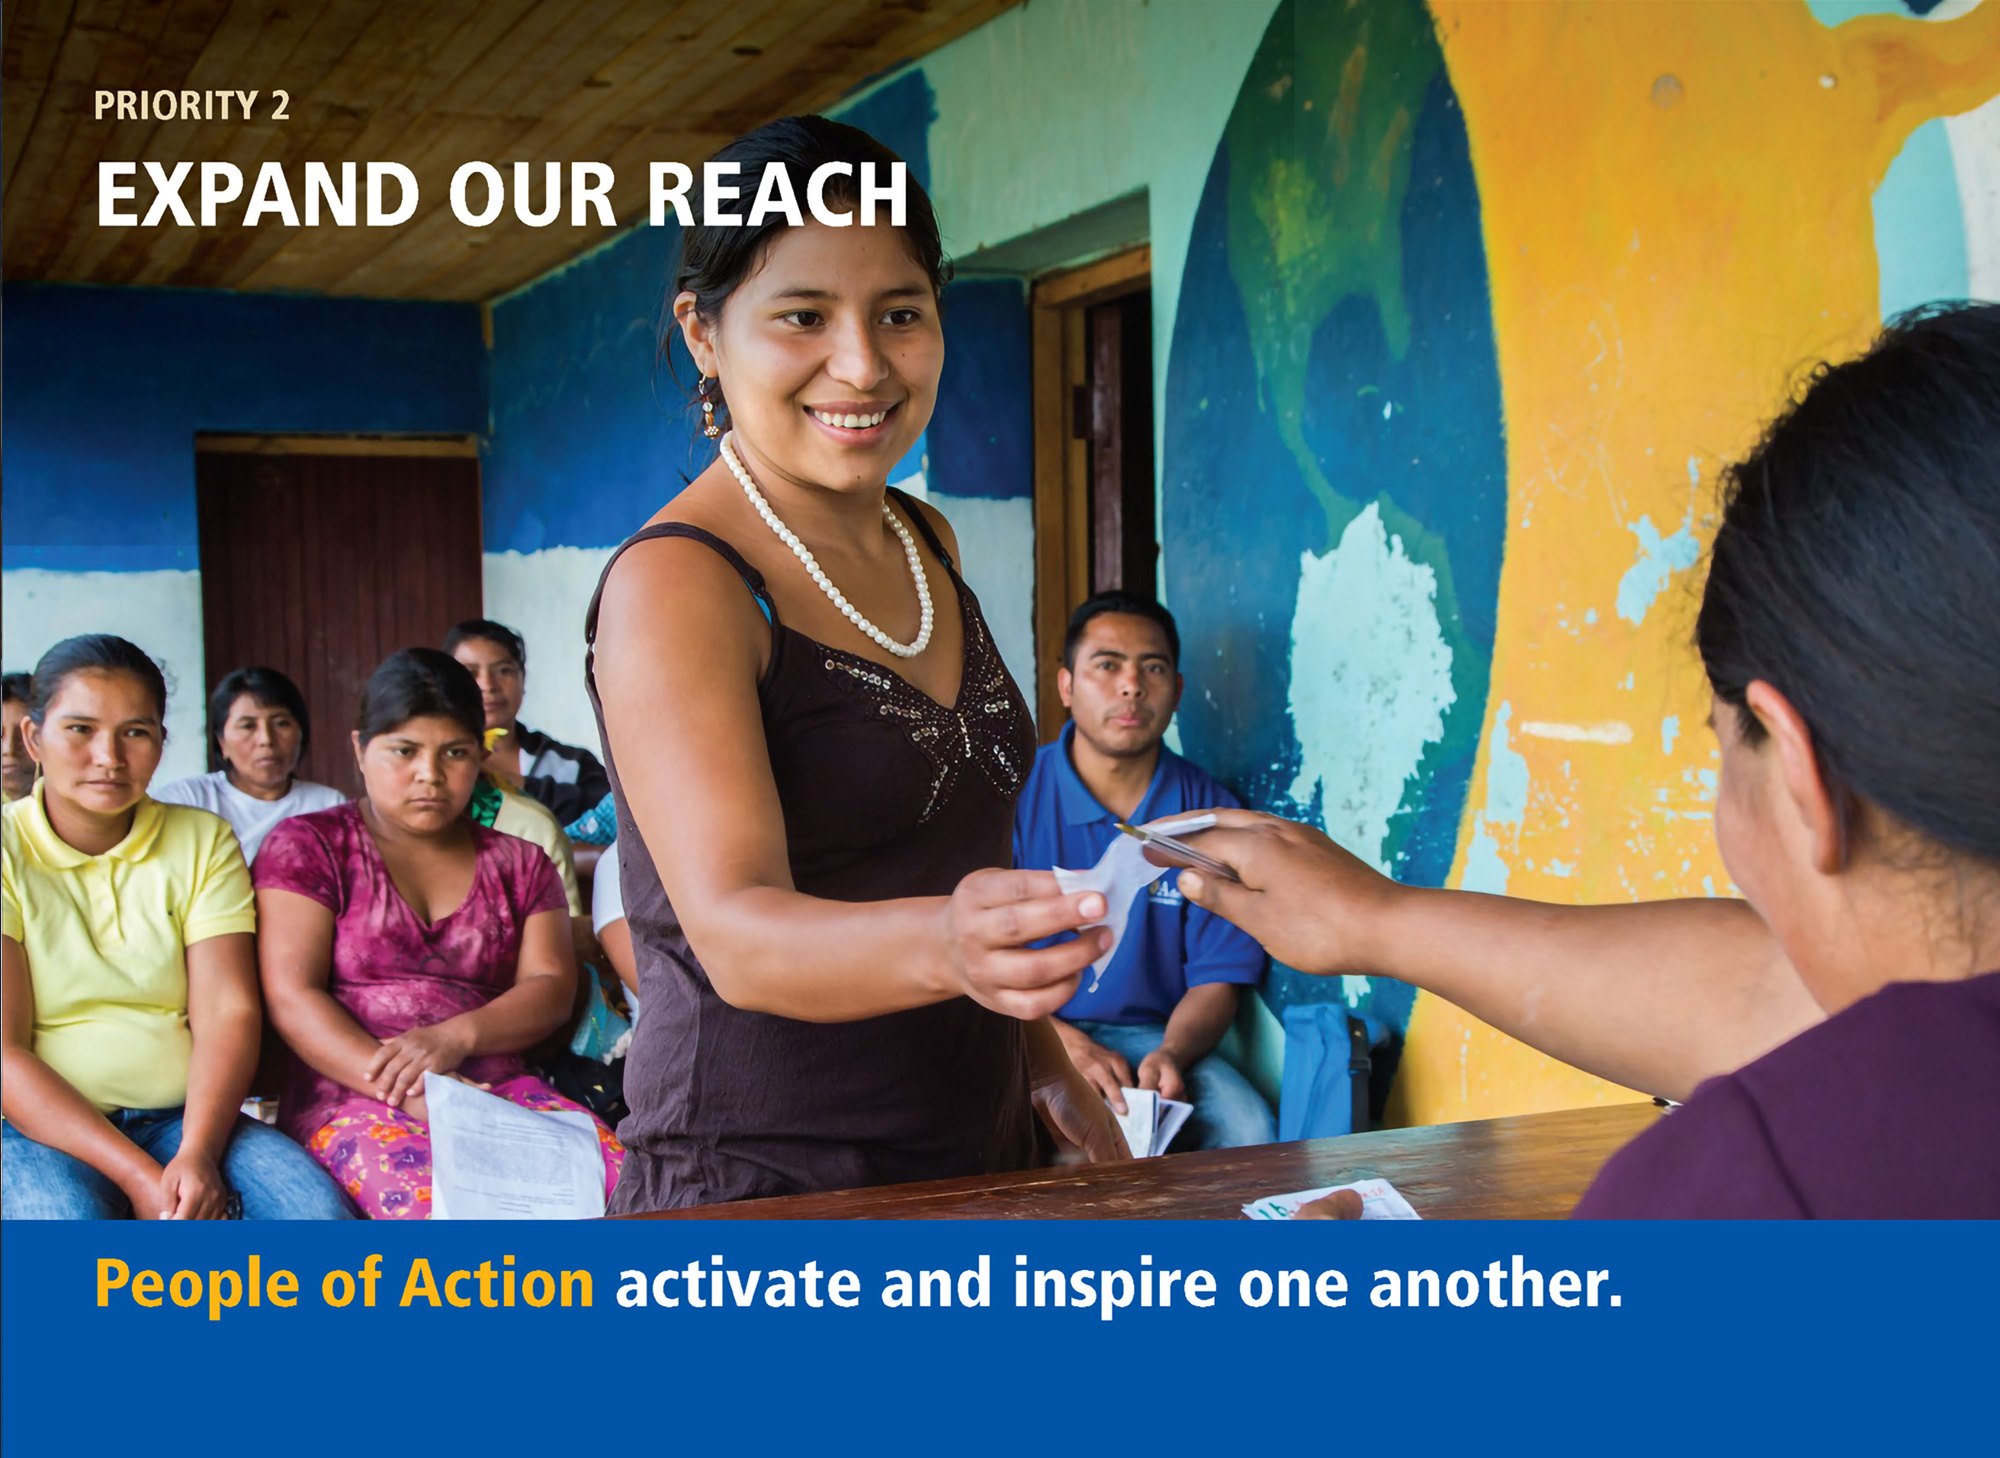 People of action activate and inspire each other.